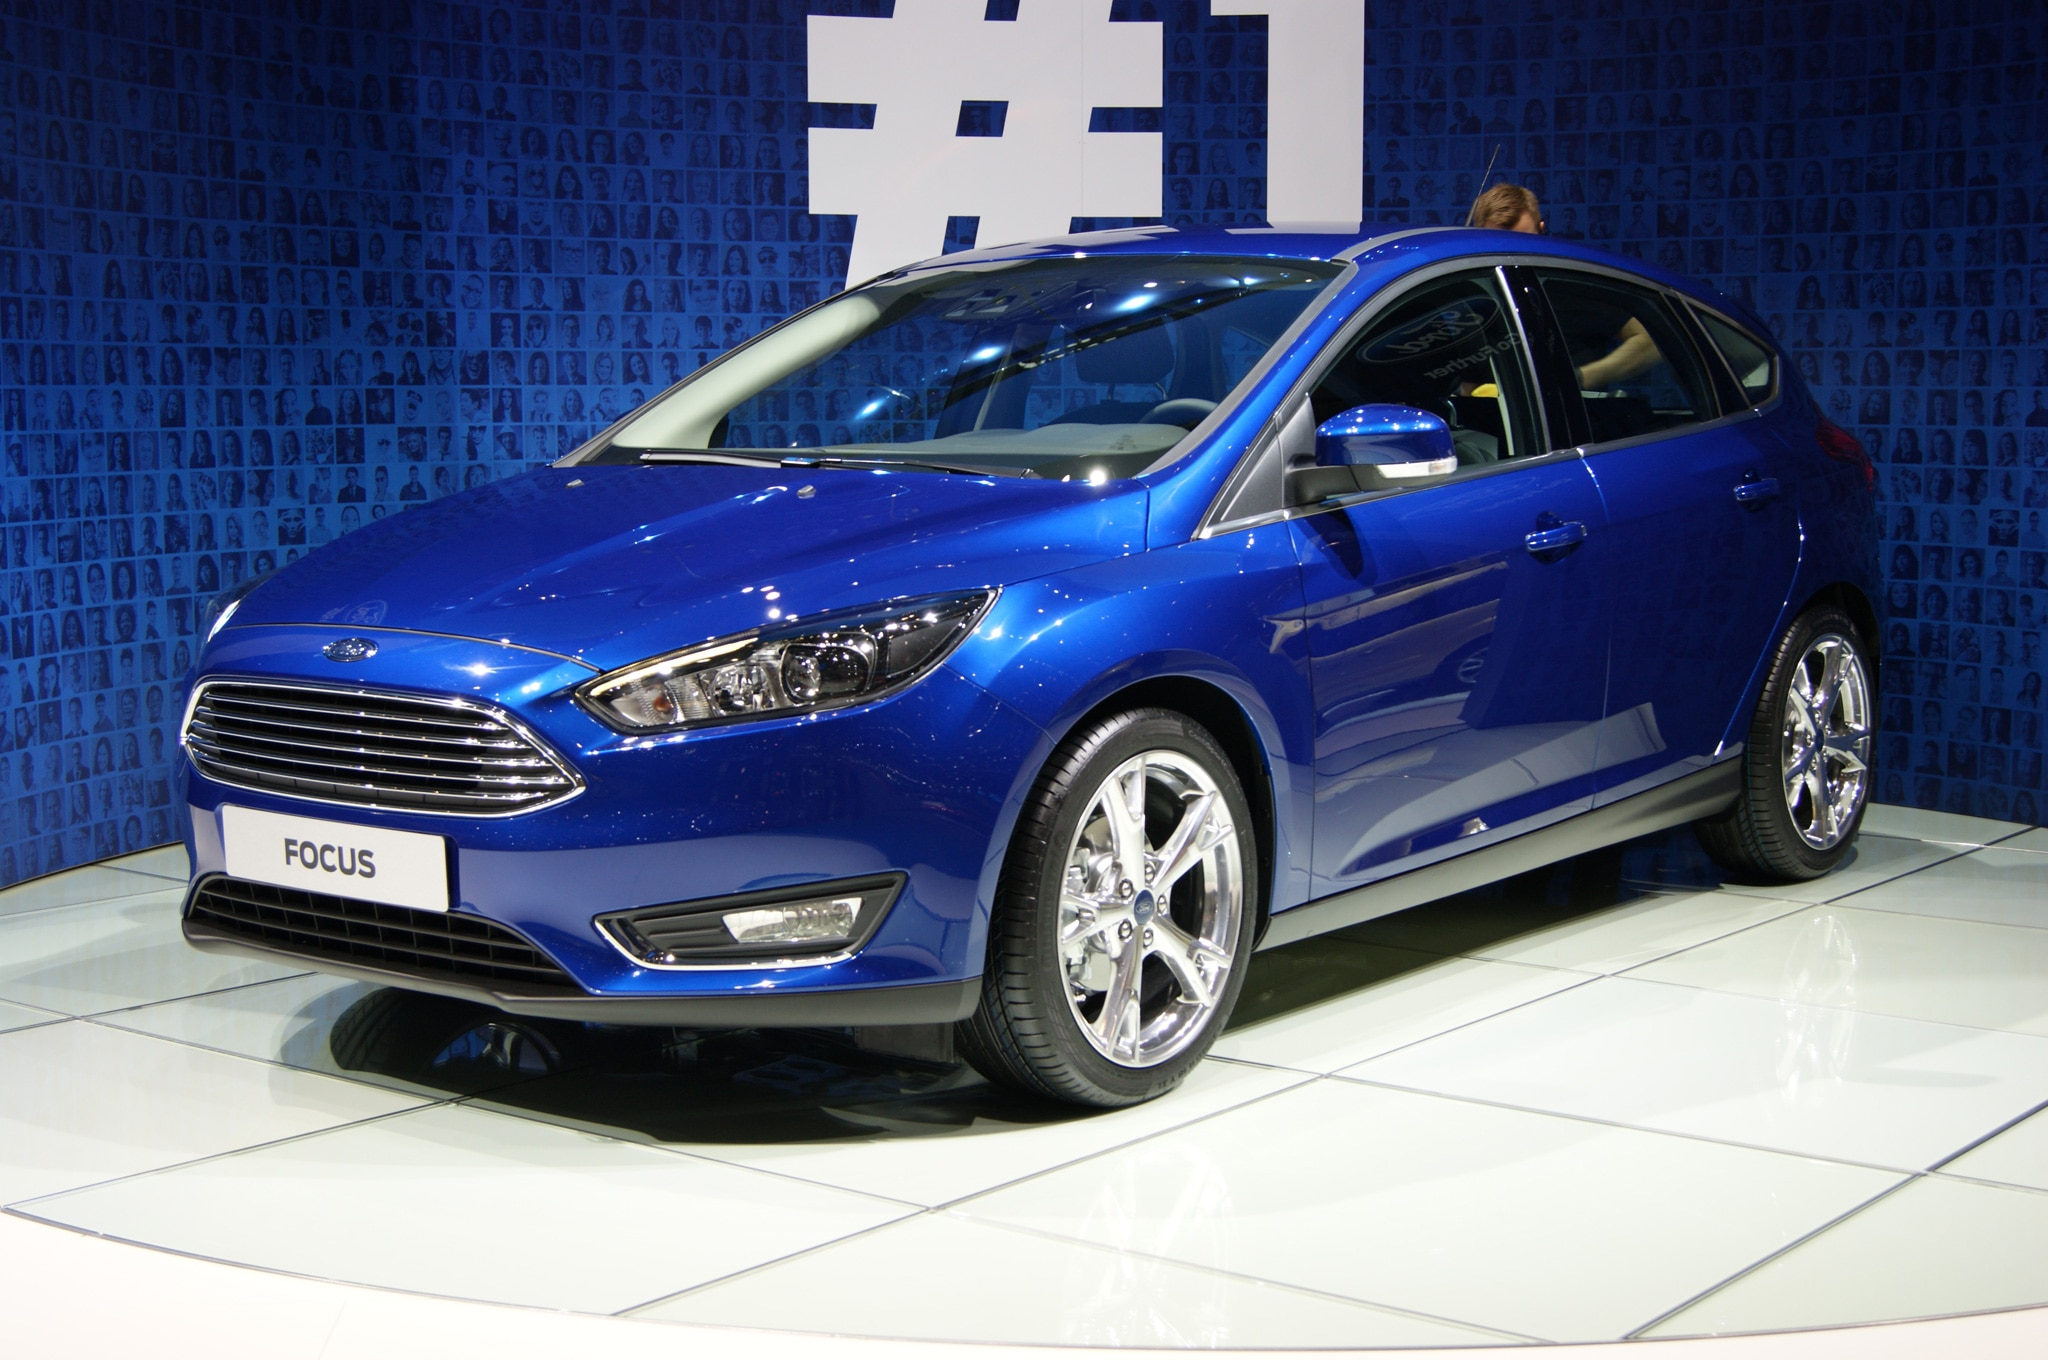 2015 Ford Focus Hatchback At Geneva 2014 Front Side View1